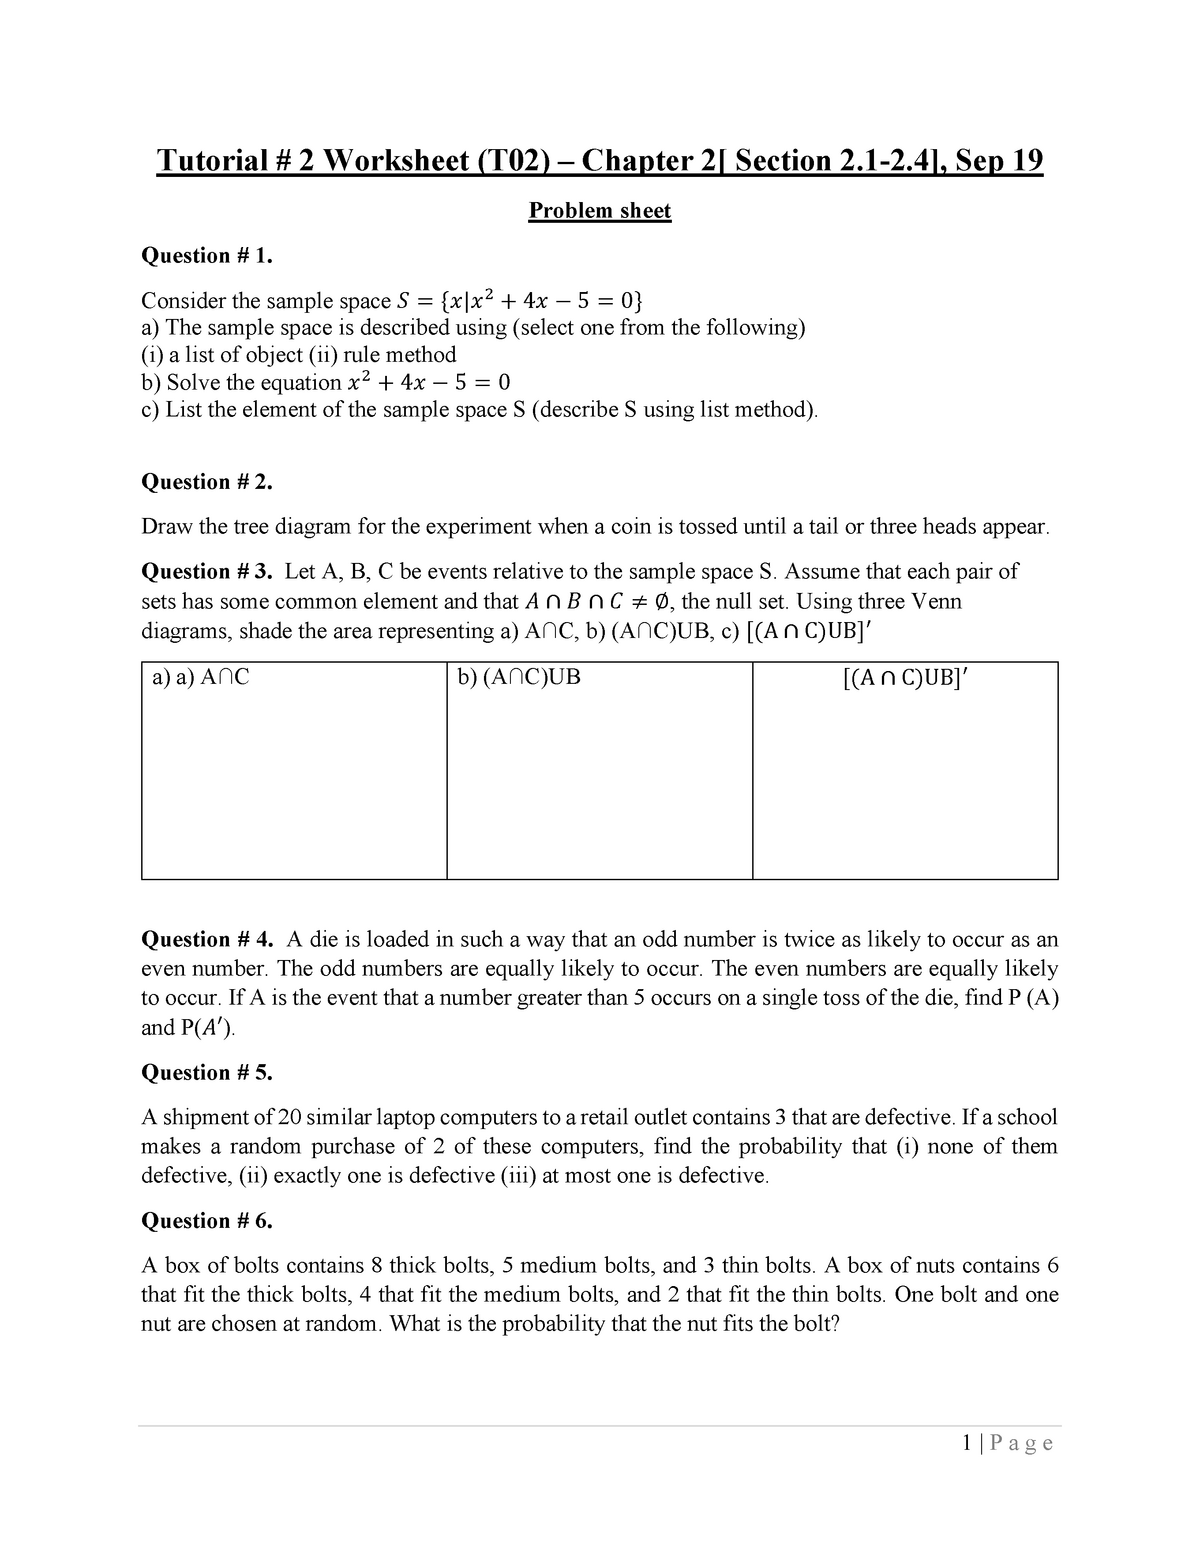 Problem sheet and solution worksheet T#2 (Section T02